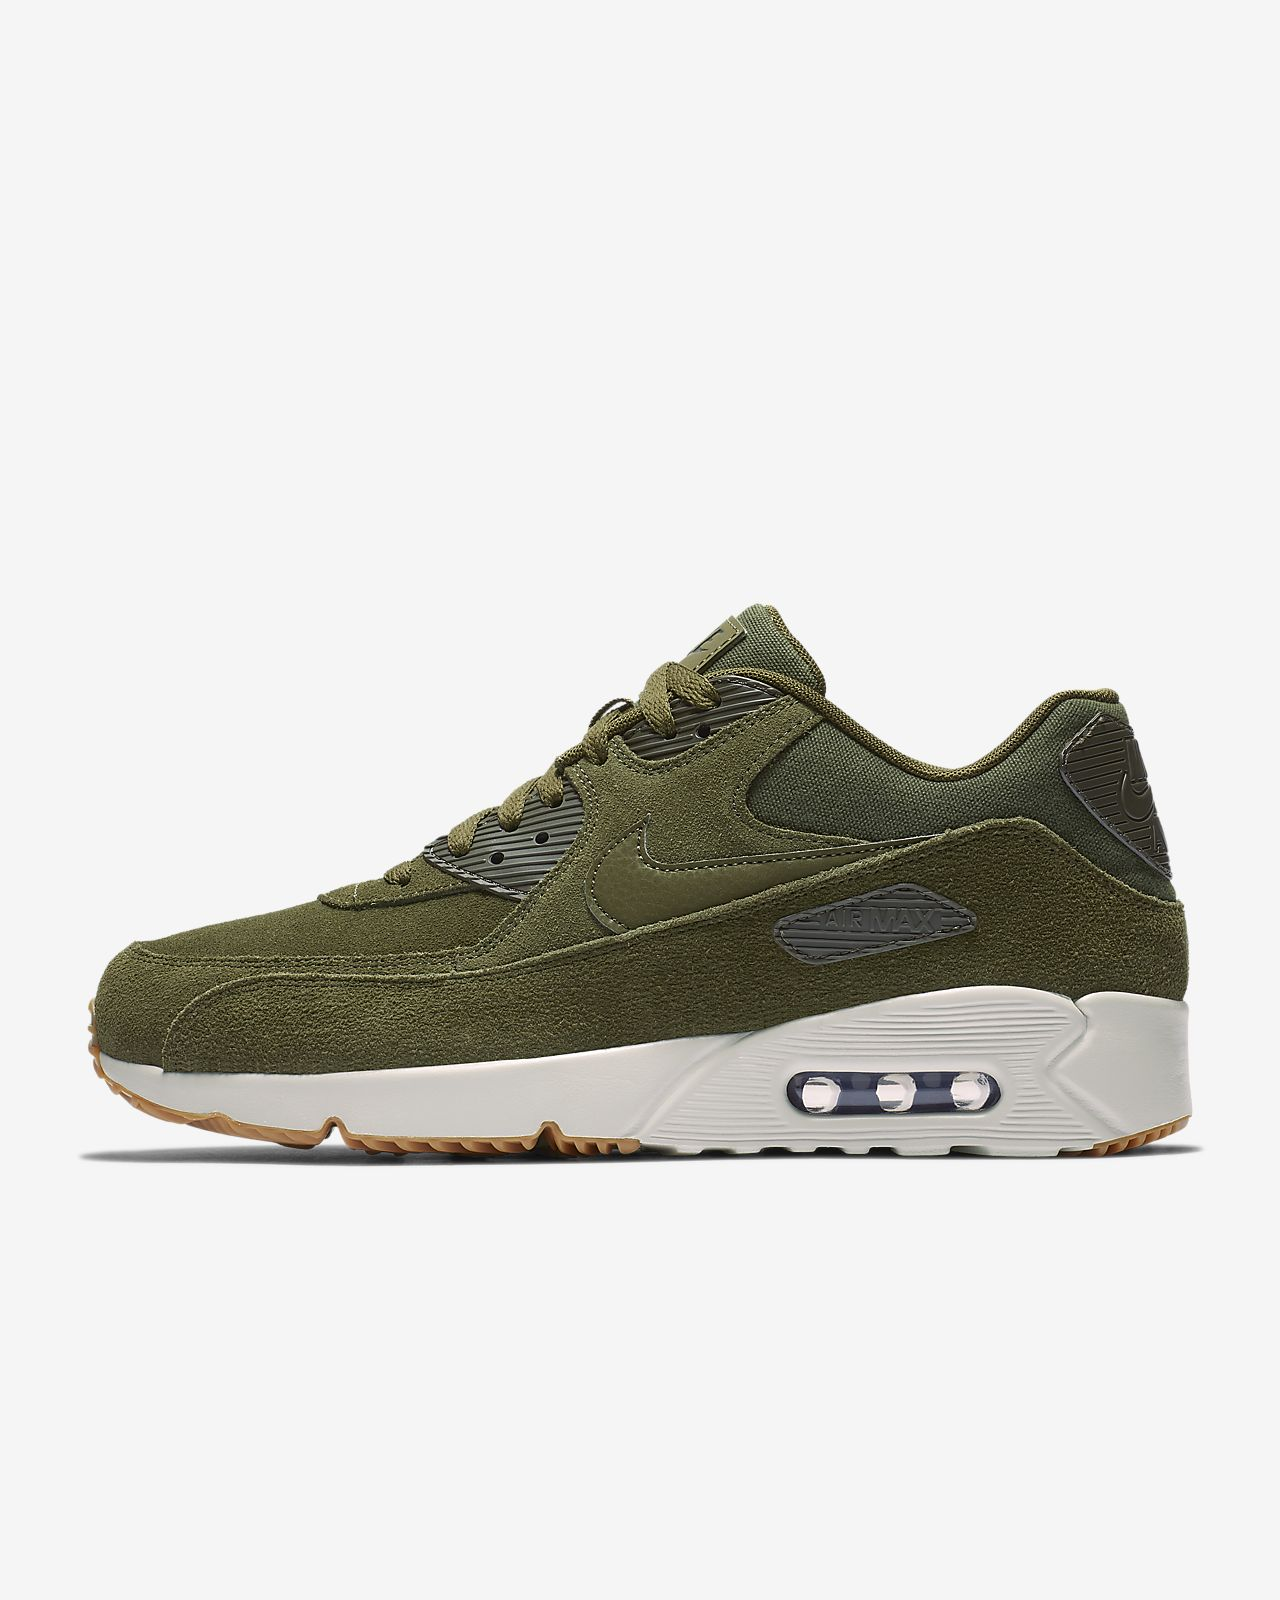 4314529192ee55 Nike Air Max 90 Ultra 2.0 Men s Shoe. Nike.com